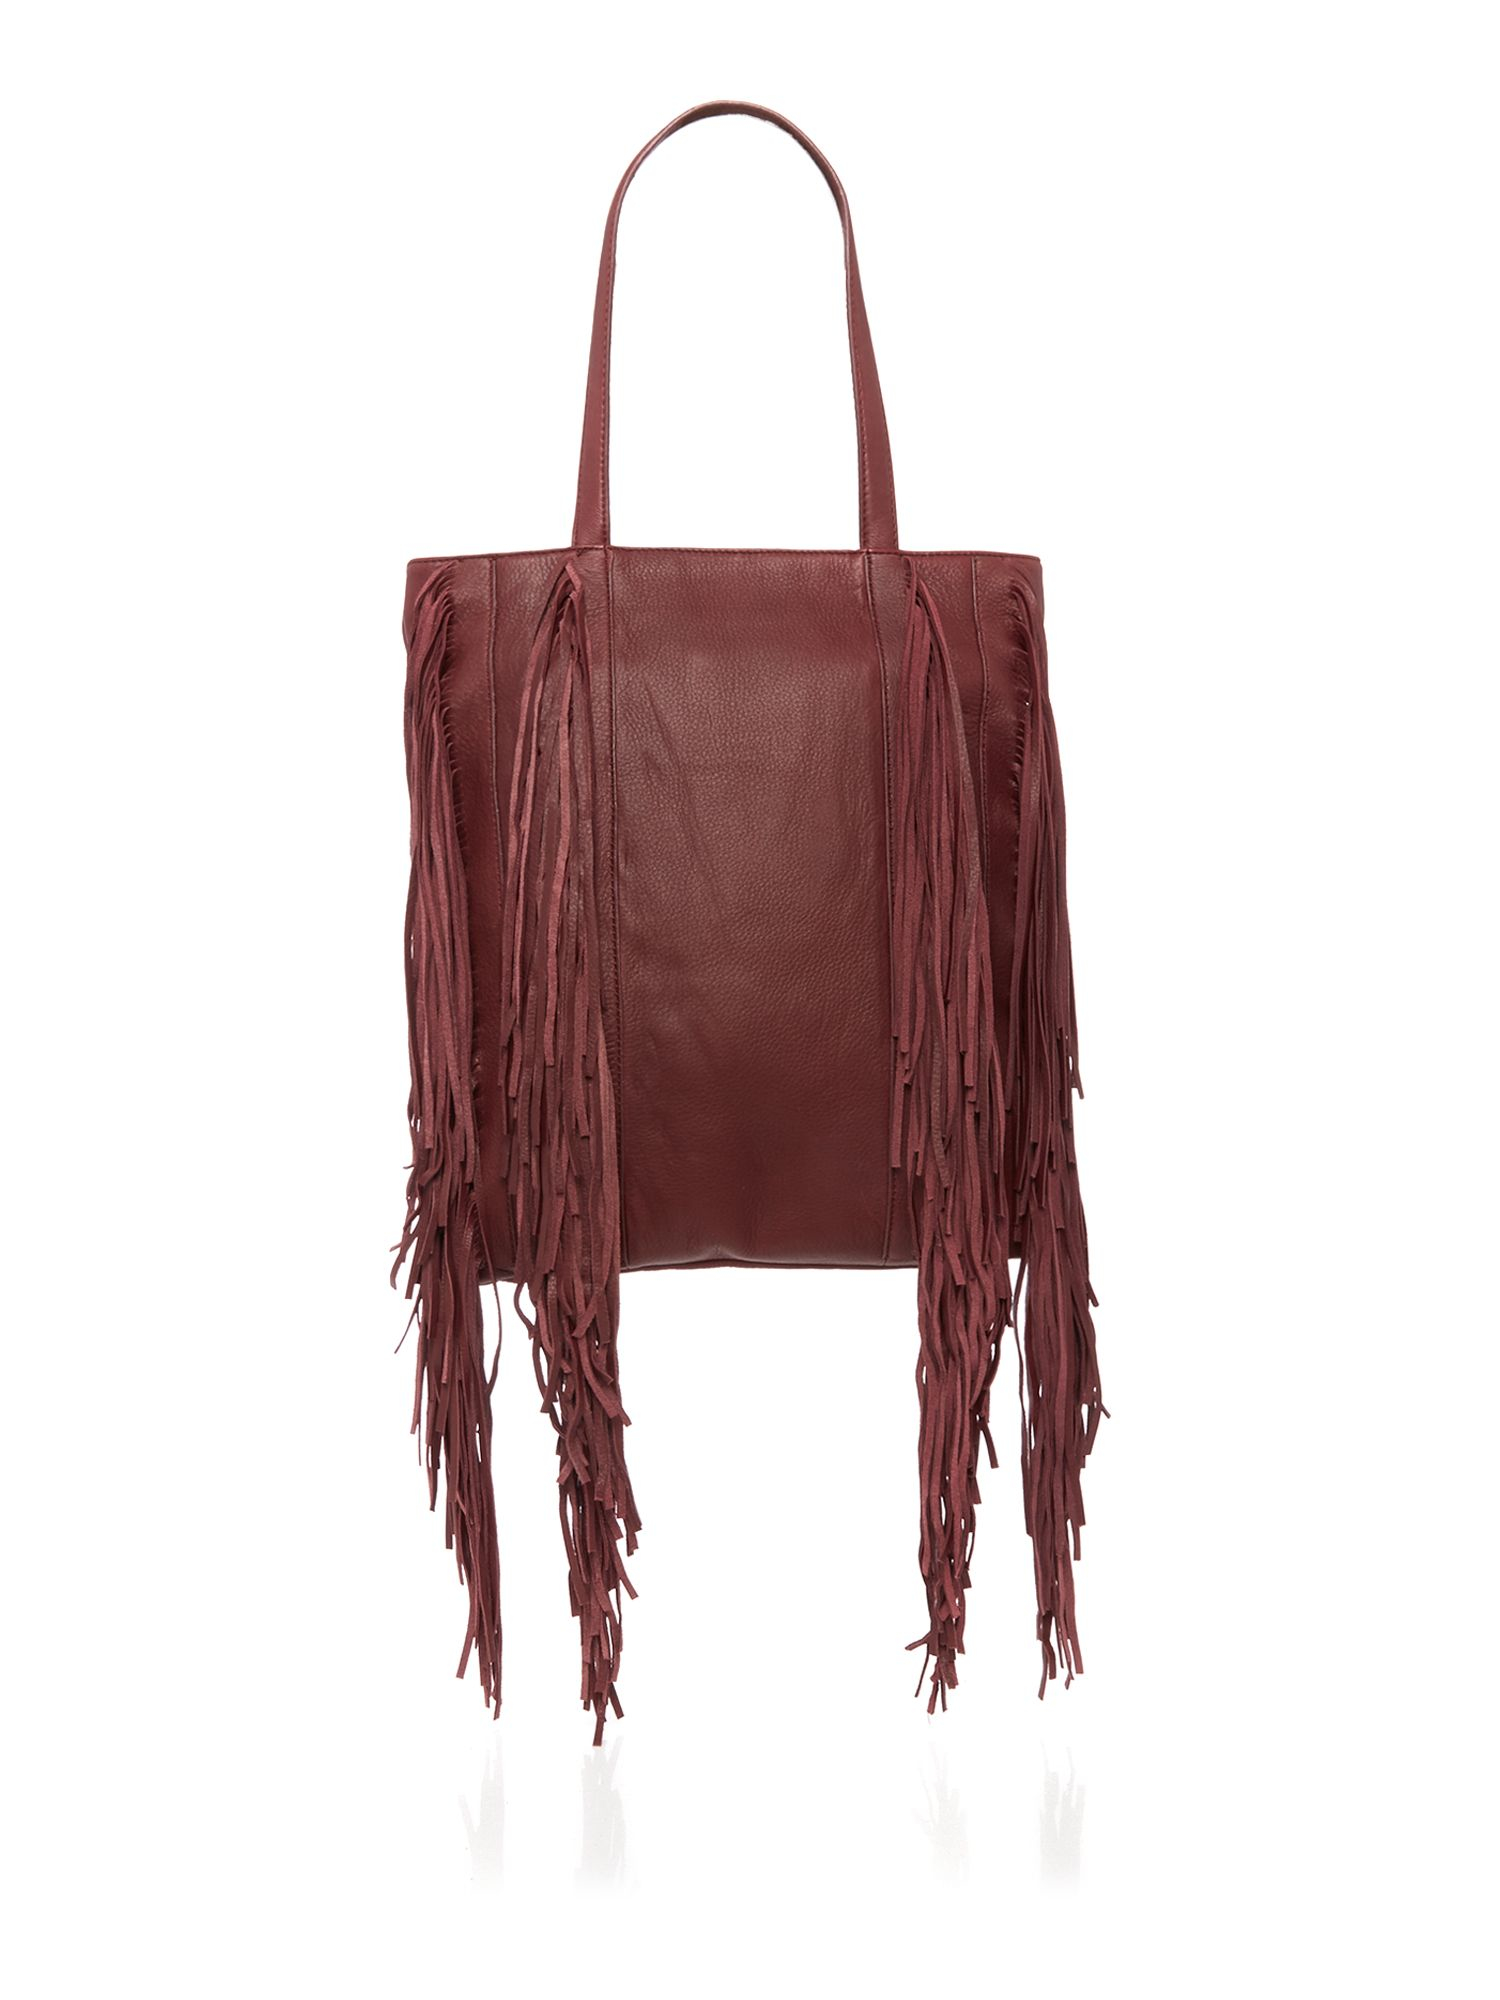 Kenneth Cole Leather Prince Street Burgundy Tote Bag in Purple